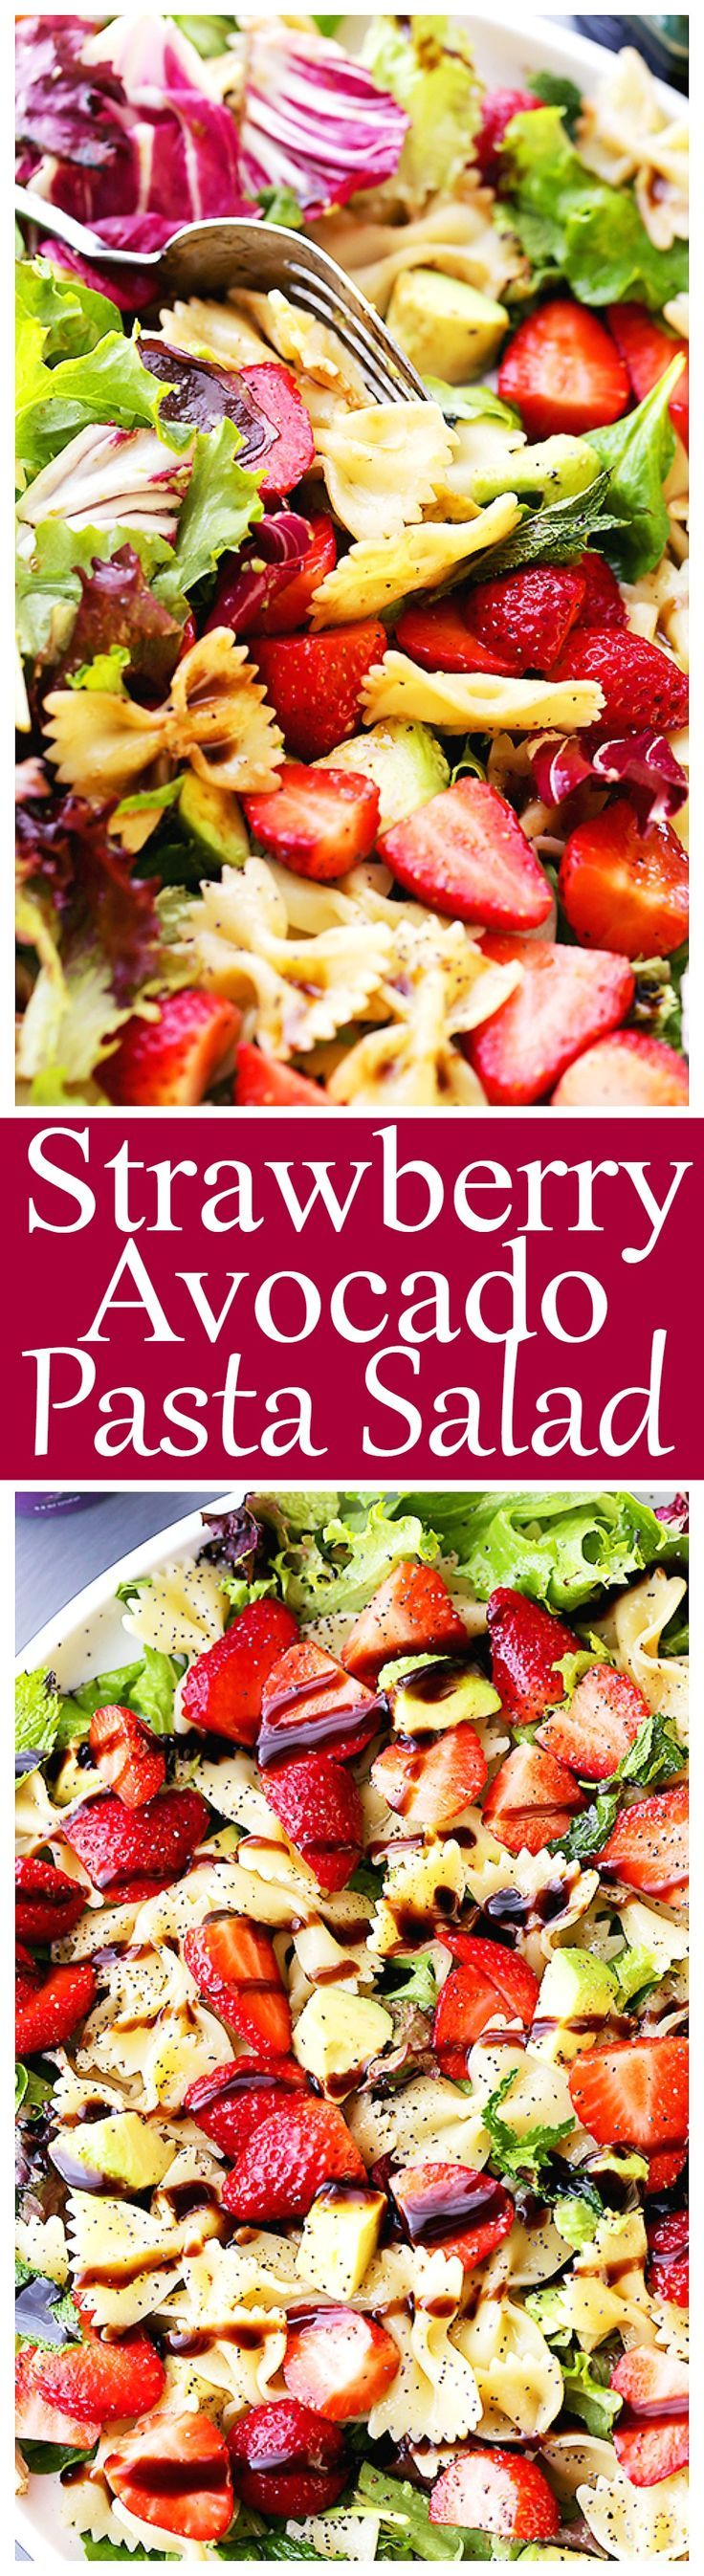 Strawberry Avocado Pasta Salad with Balsamic Glaze Recipe - Strawberries, avocados and bow tie pasta all tossed with an irresistibly creamy balsamic glaze. The ultimate potluck salad recipe! Perfect for Easter, March Madness parties, or an easy lunch.